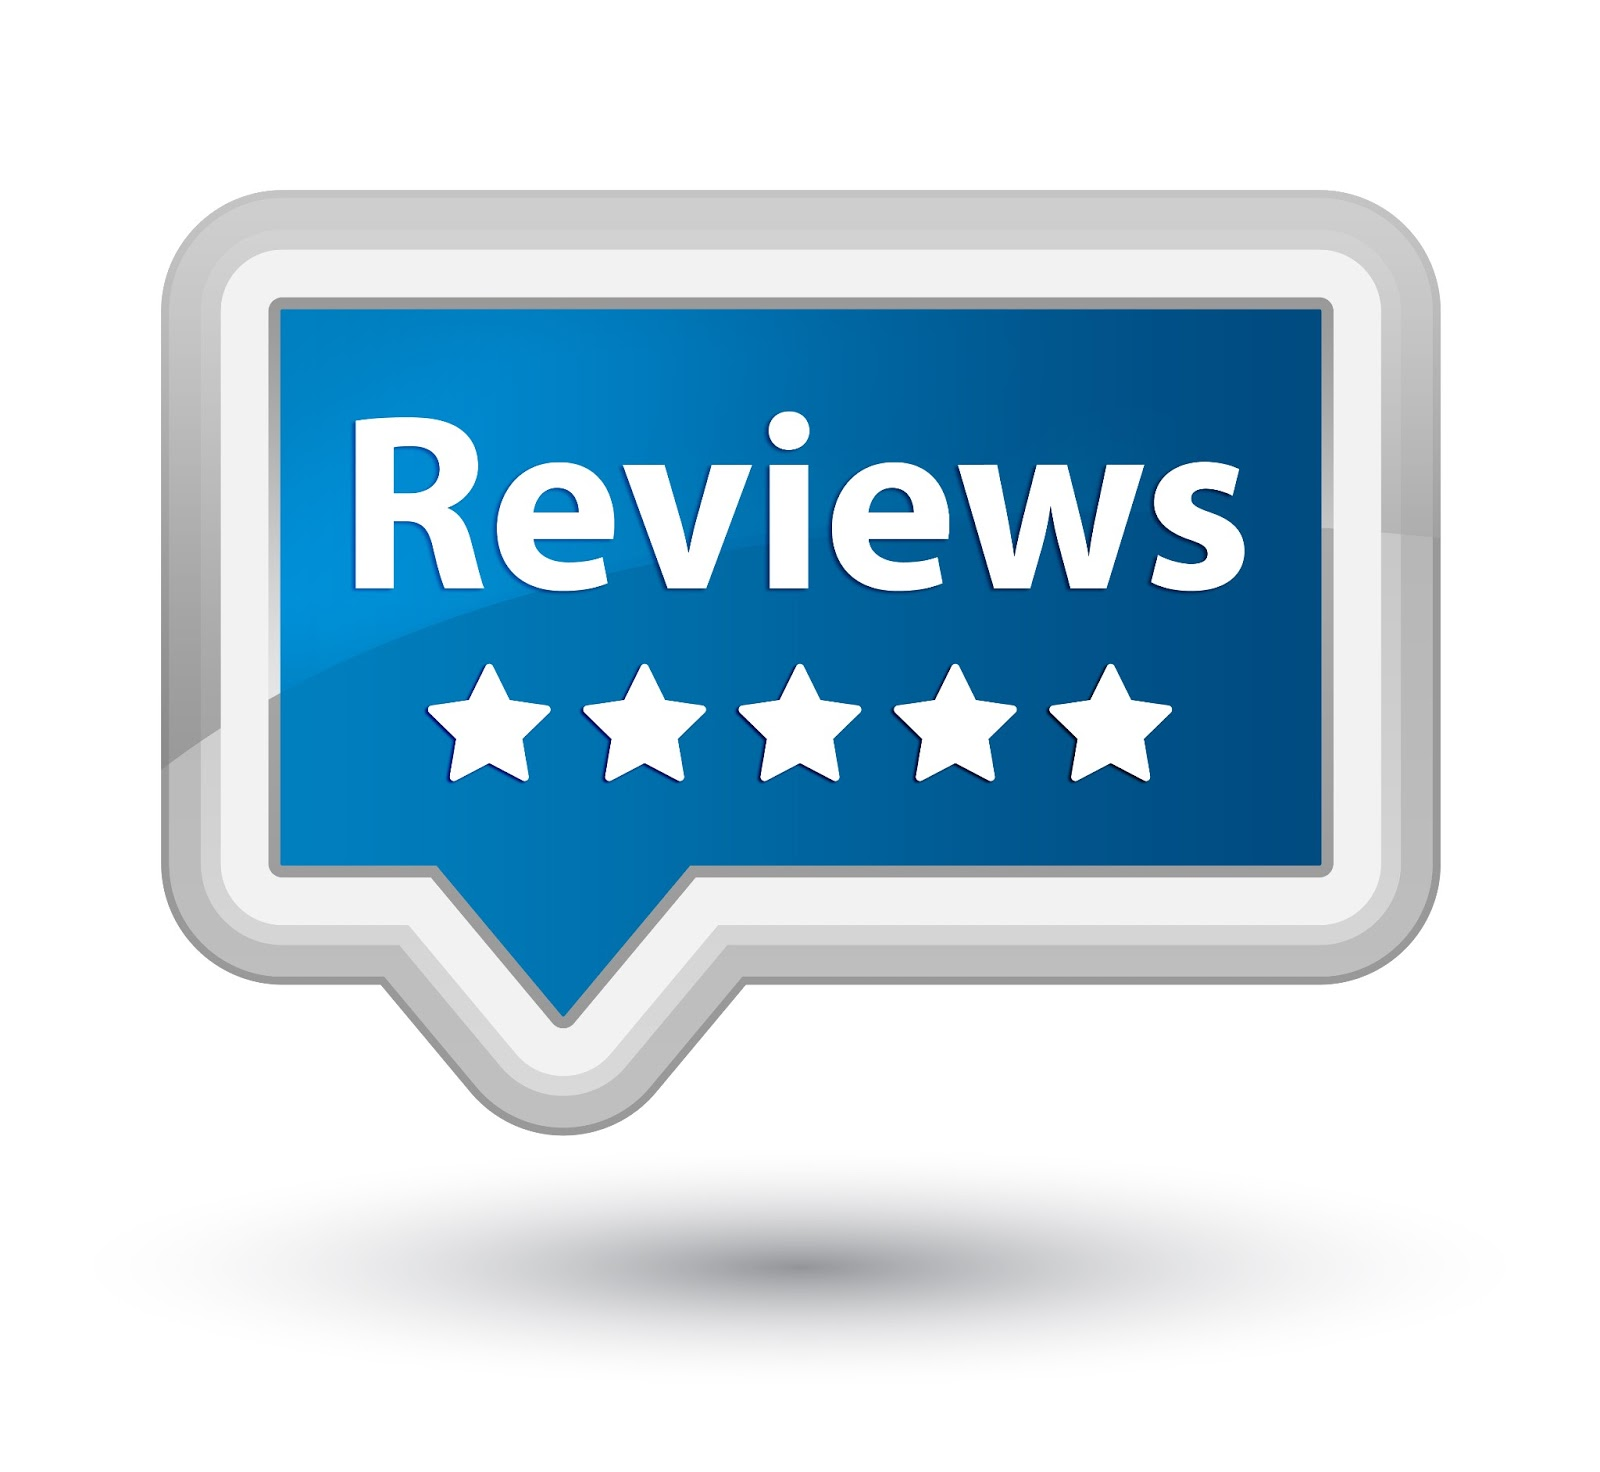 Reviews >> Make 25 Reviews To Advertise Your Company Or Product For 50